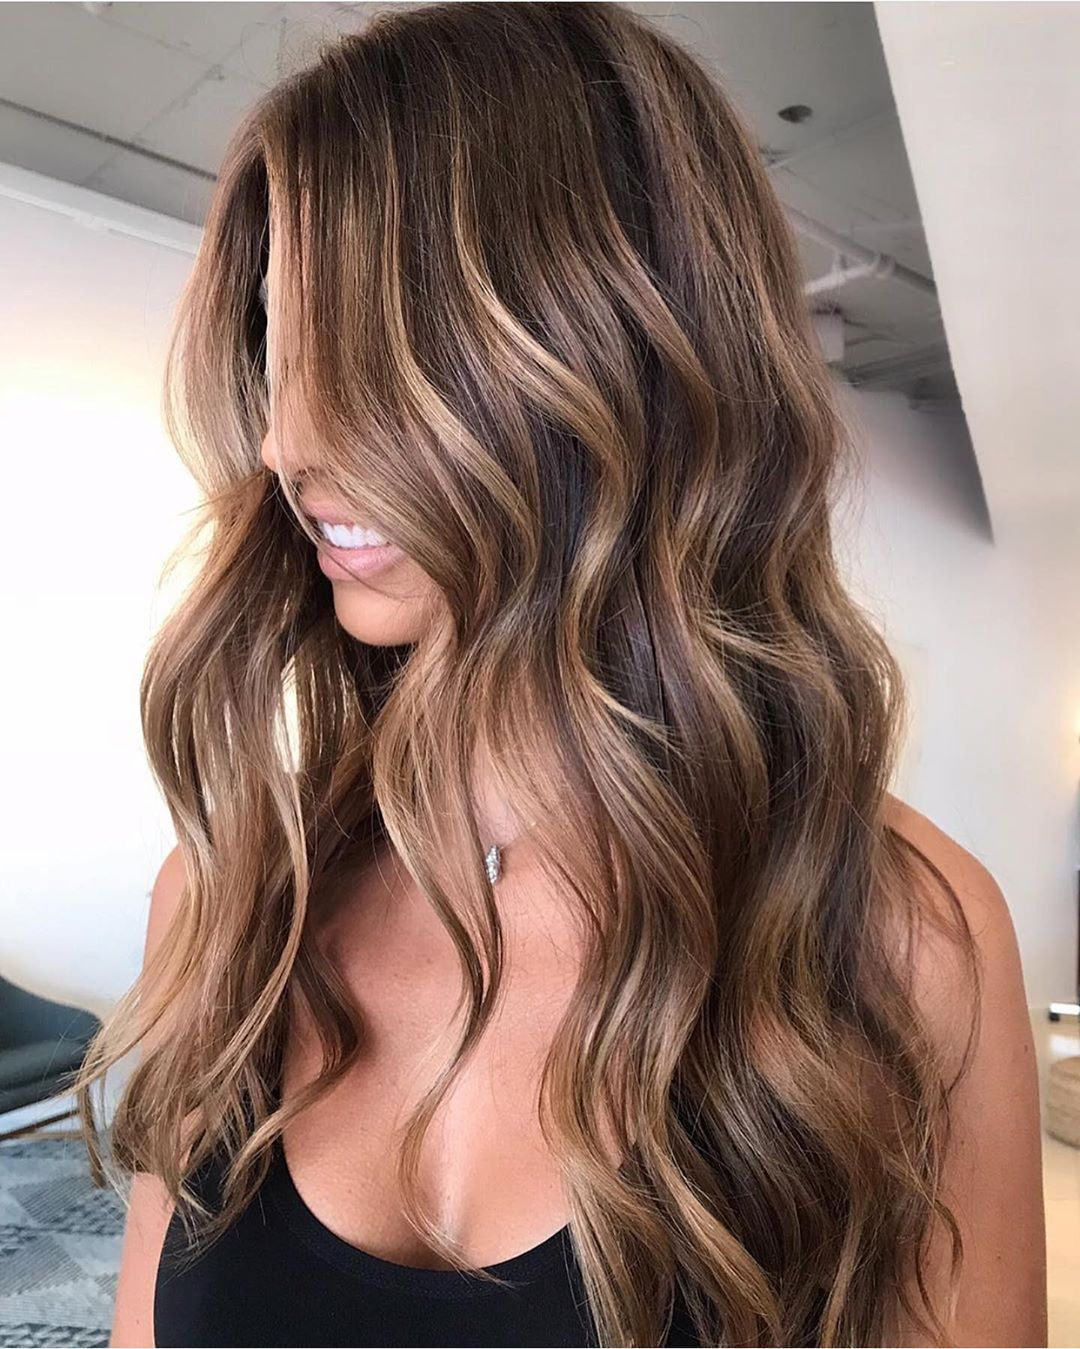 "KELLY MASSIAS on Instagram: ""Doesn't take much to make this babe glow⭐️ . . #kellymassiashair @lift.hair #caymanhair #caymanstylist #caymansalon"""